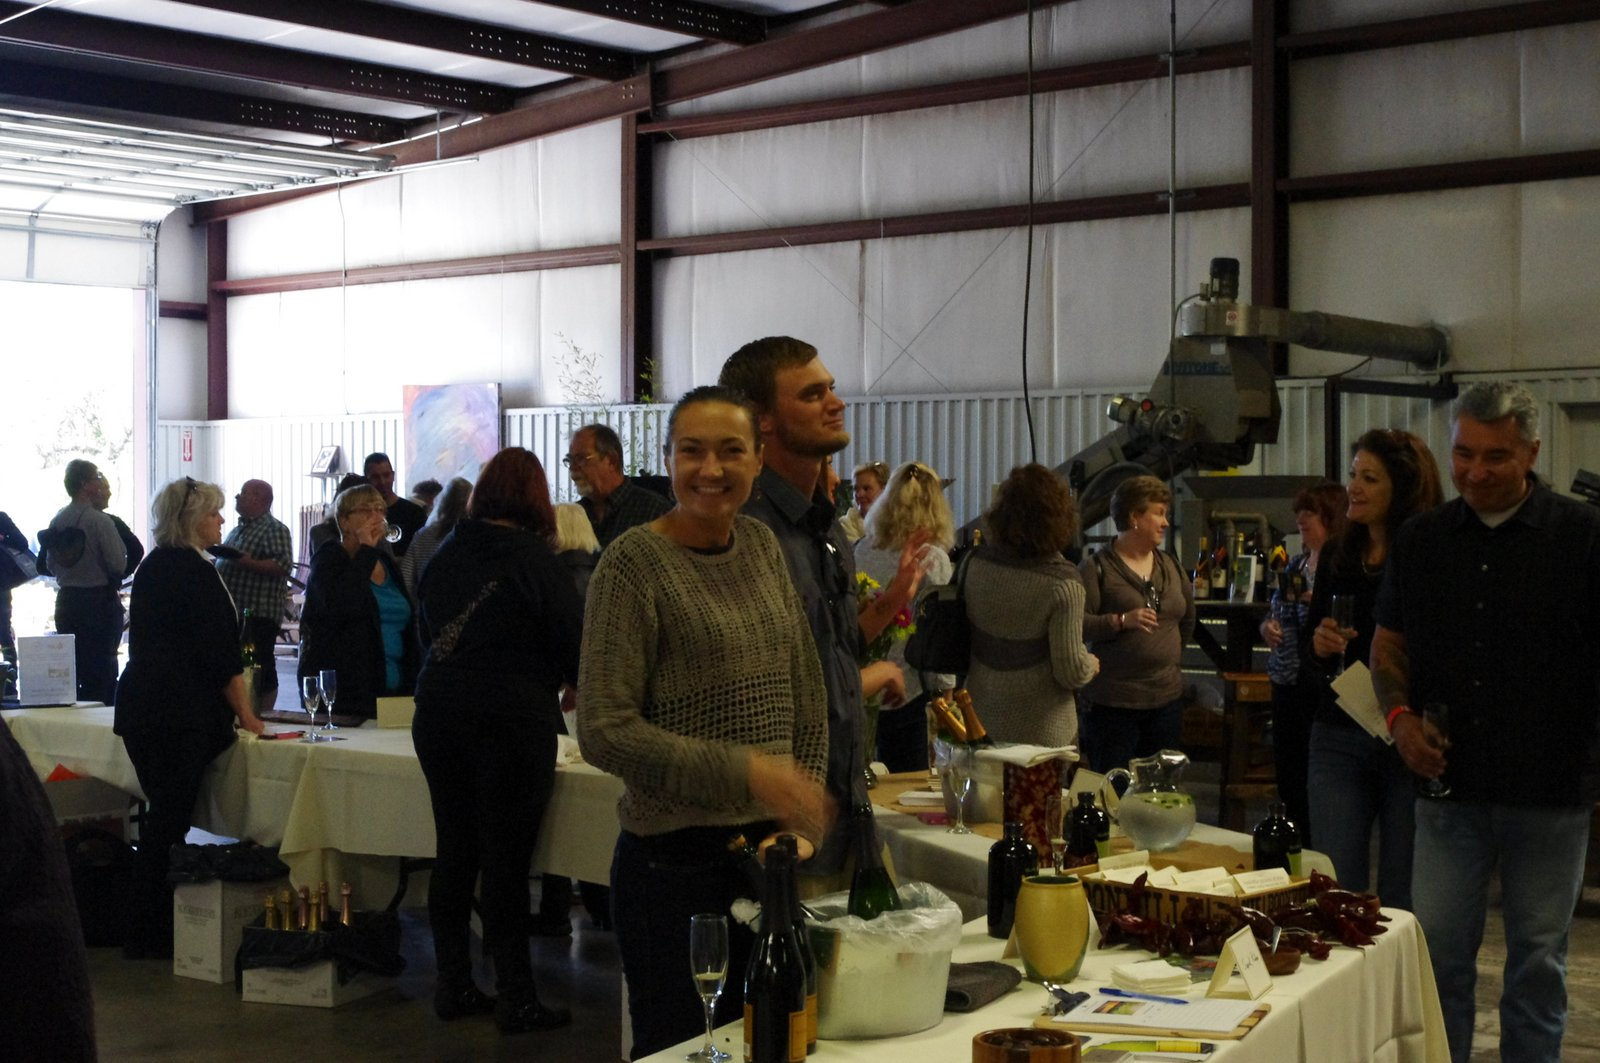 anderson valley's signal ridge vineyards at the mendocino sparkling wine festival